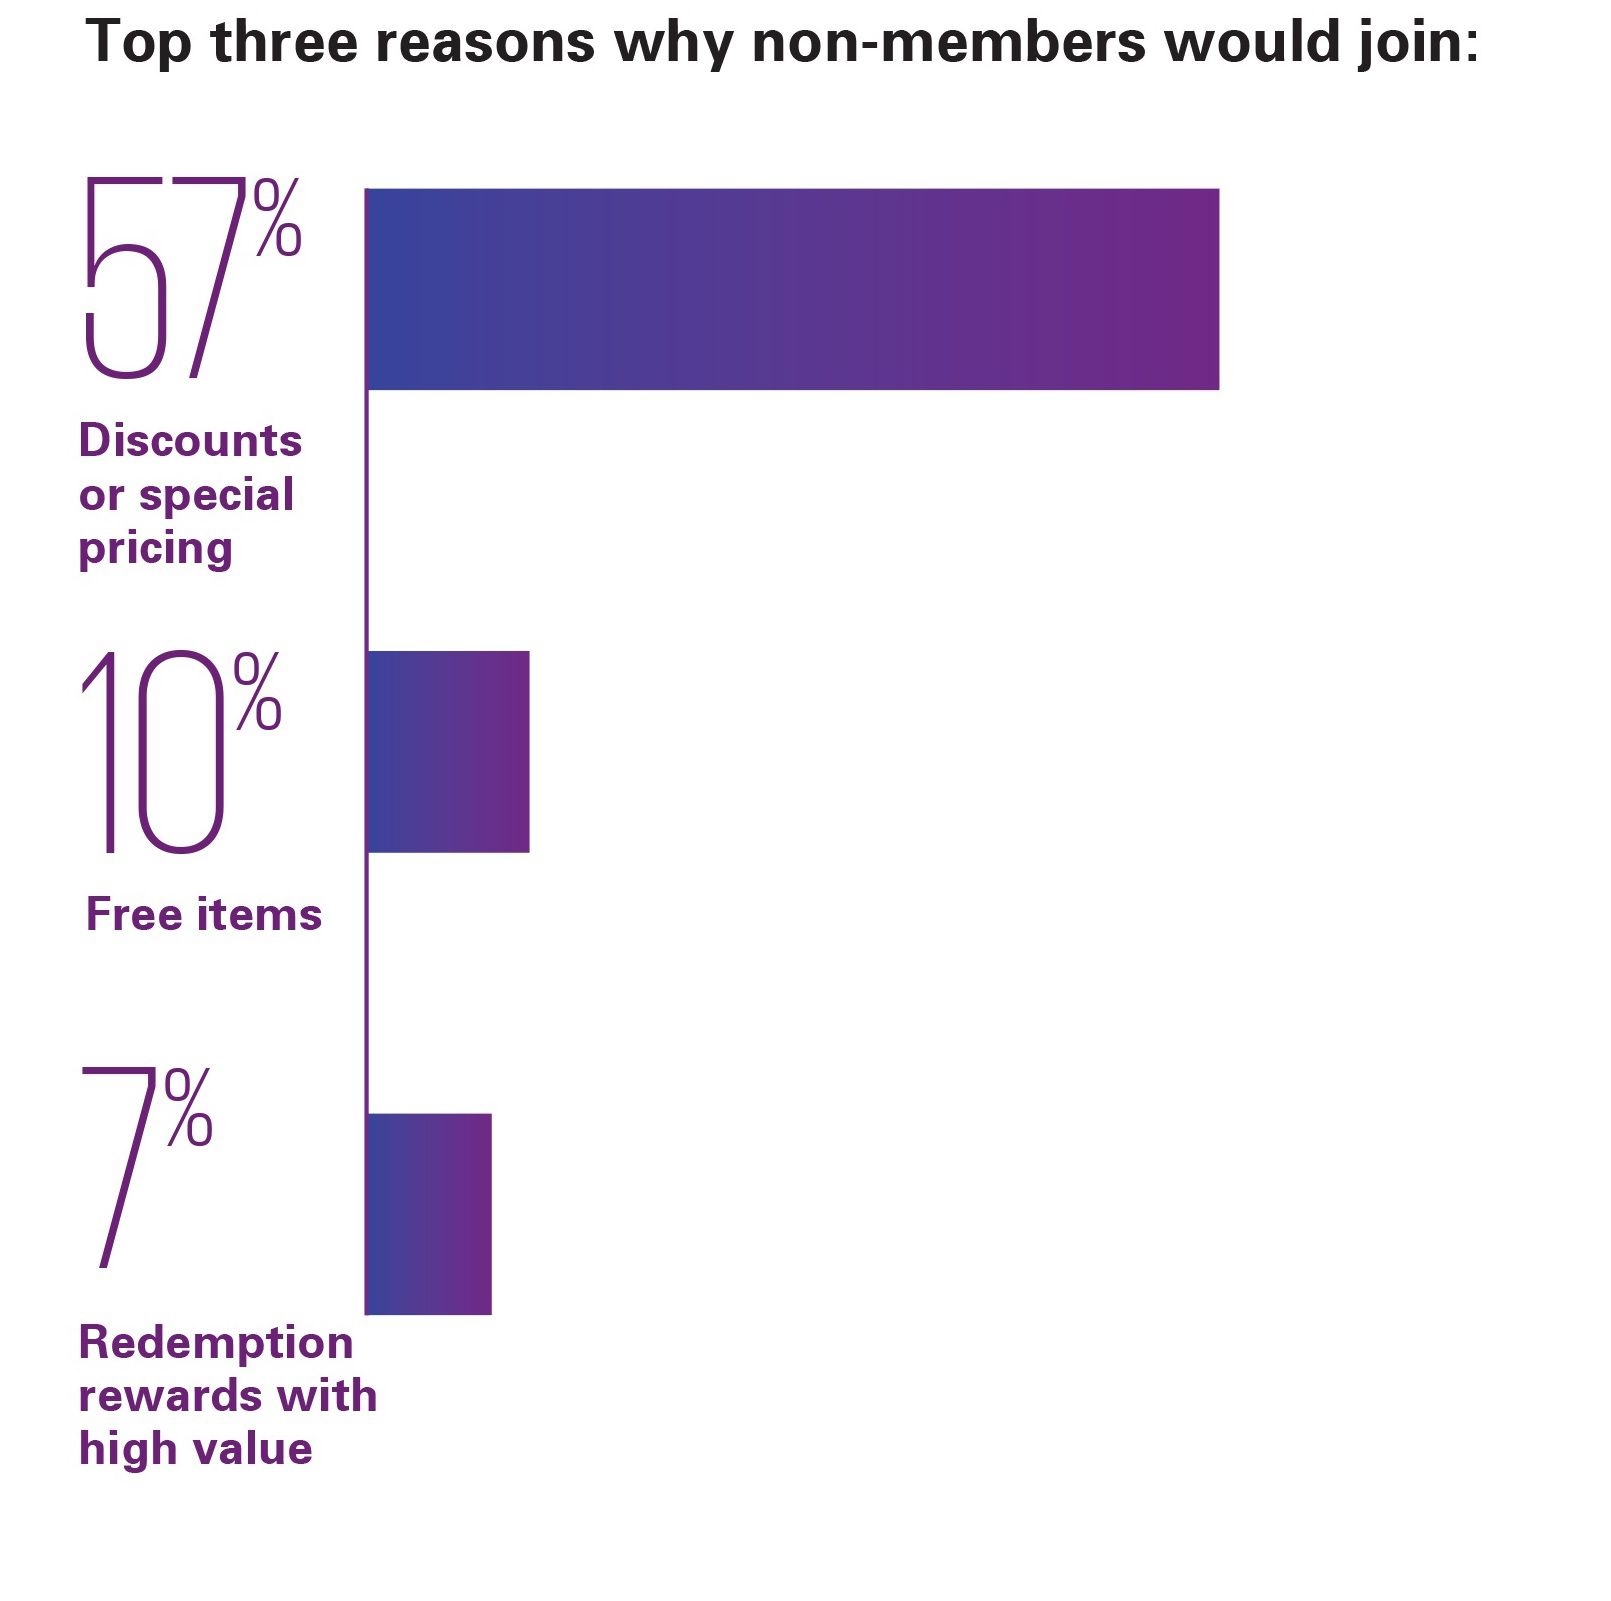 Top three reasons why non-members would join